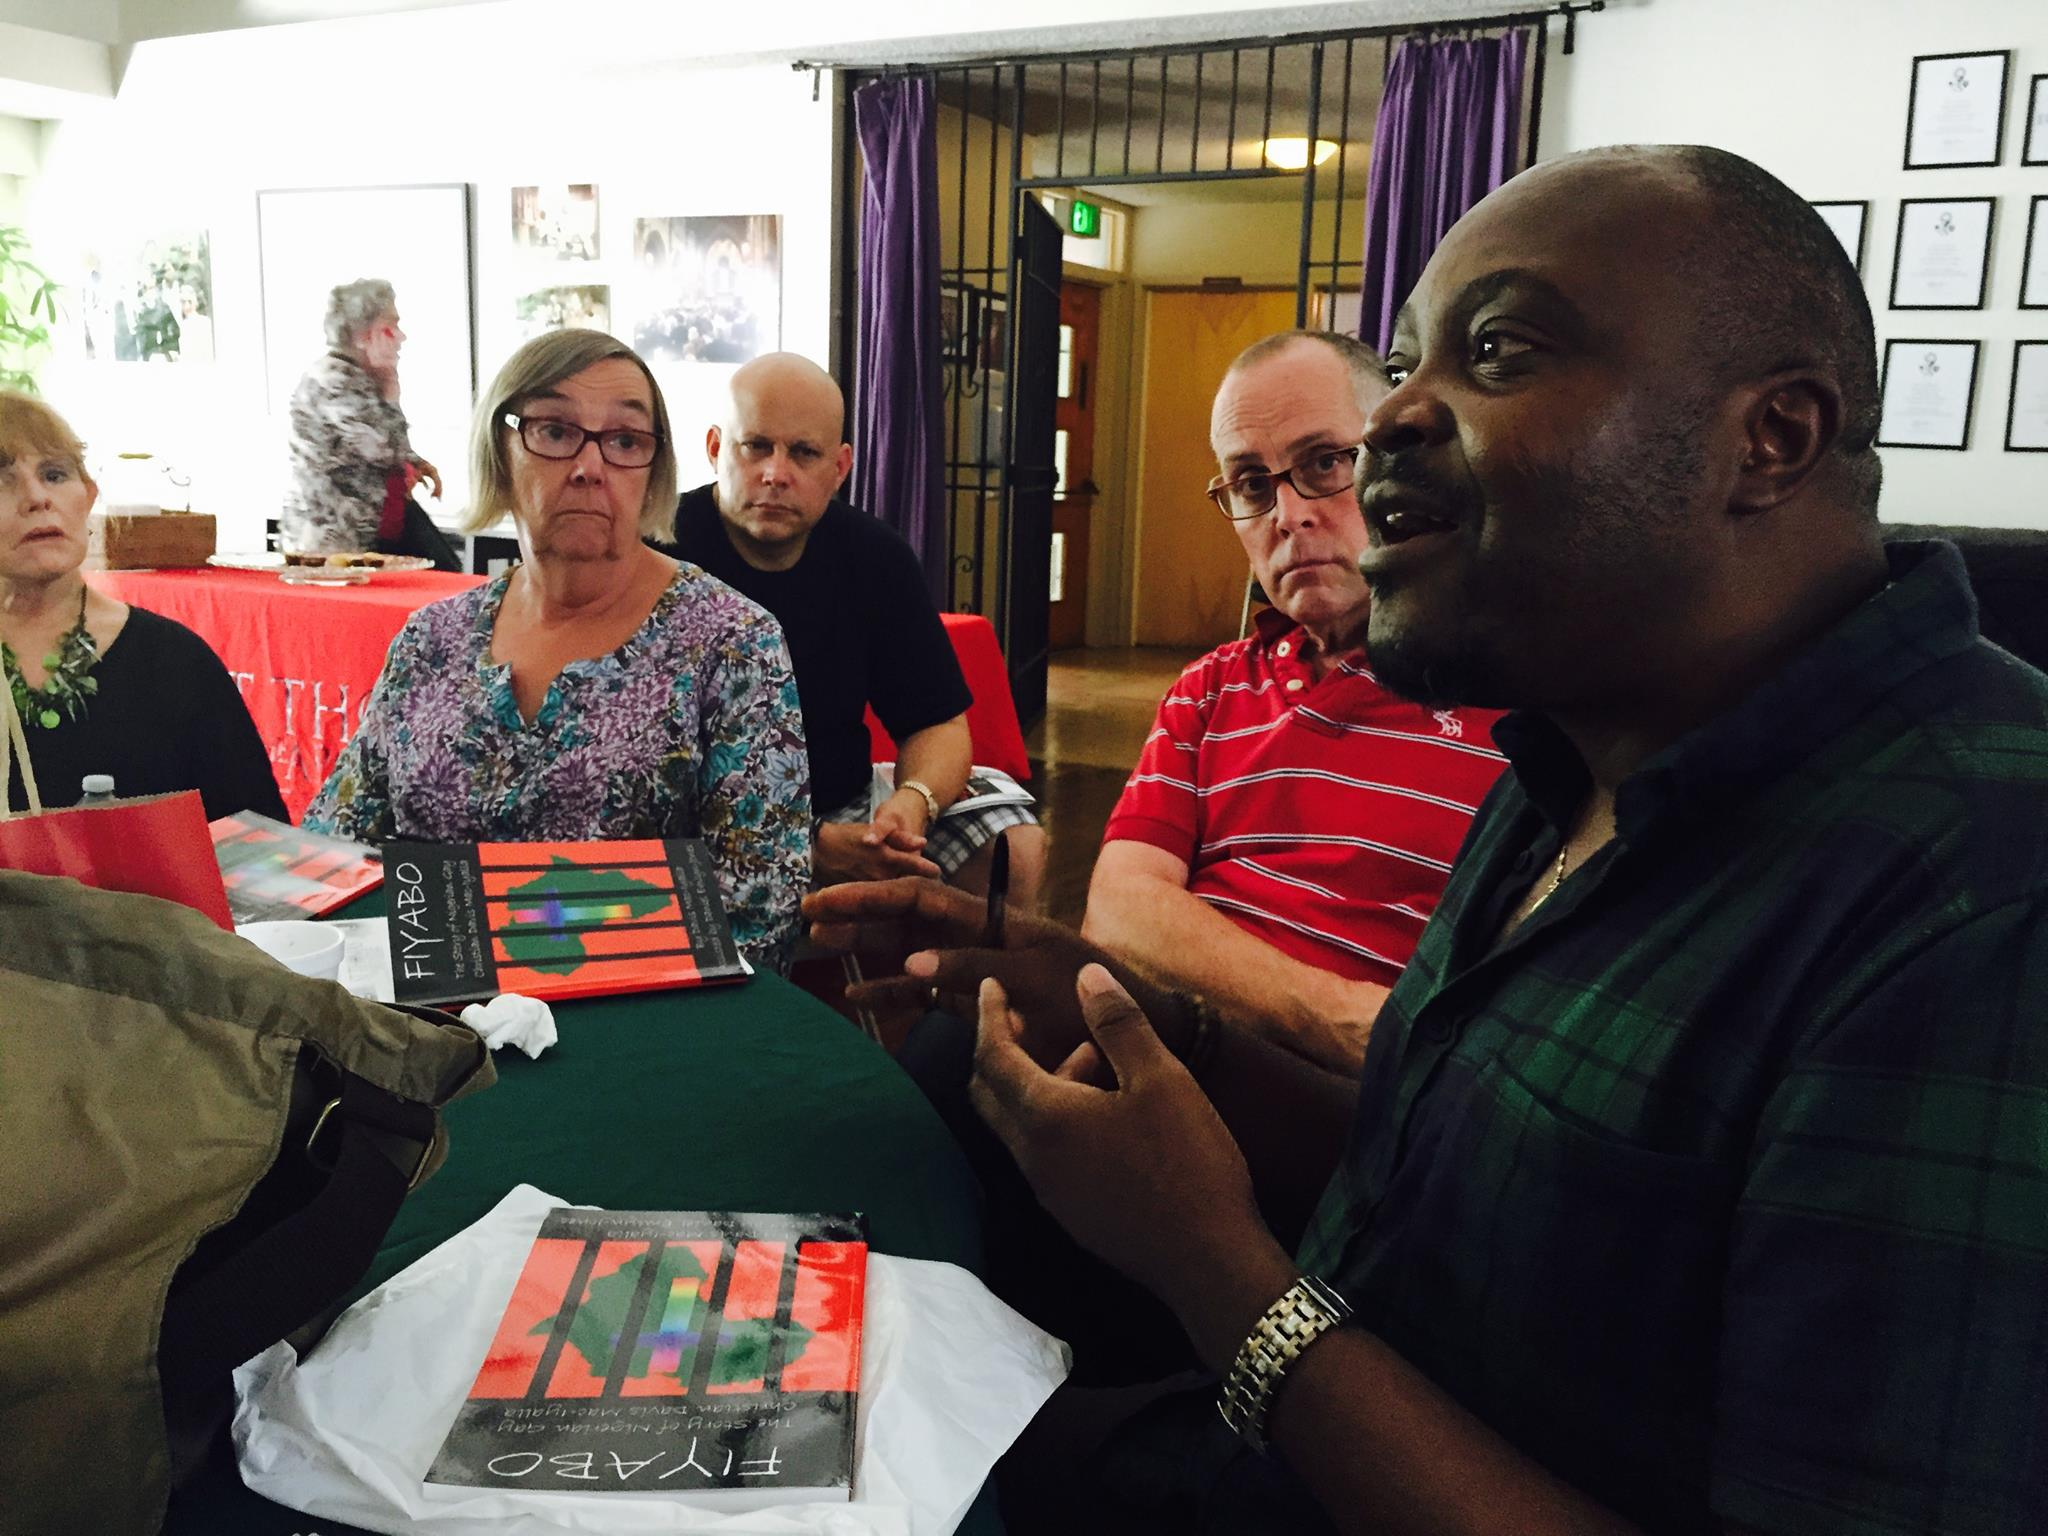 Anglo-Nigeria LGBTI activist Davis Mac-Iyalla discussed the harsh conditions in Nigeria and his work in West Africa in general during a visit on Aug. 30 to St. Thomas the Apostle Episcopal Church in West Hollywood, California. (Colin Stewart photo)